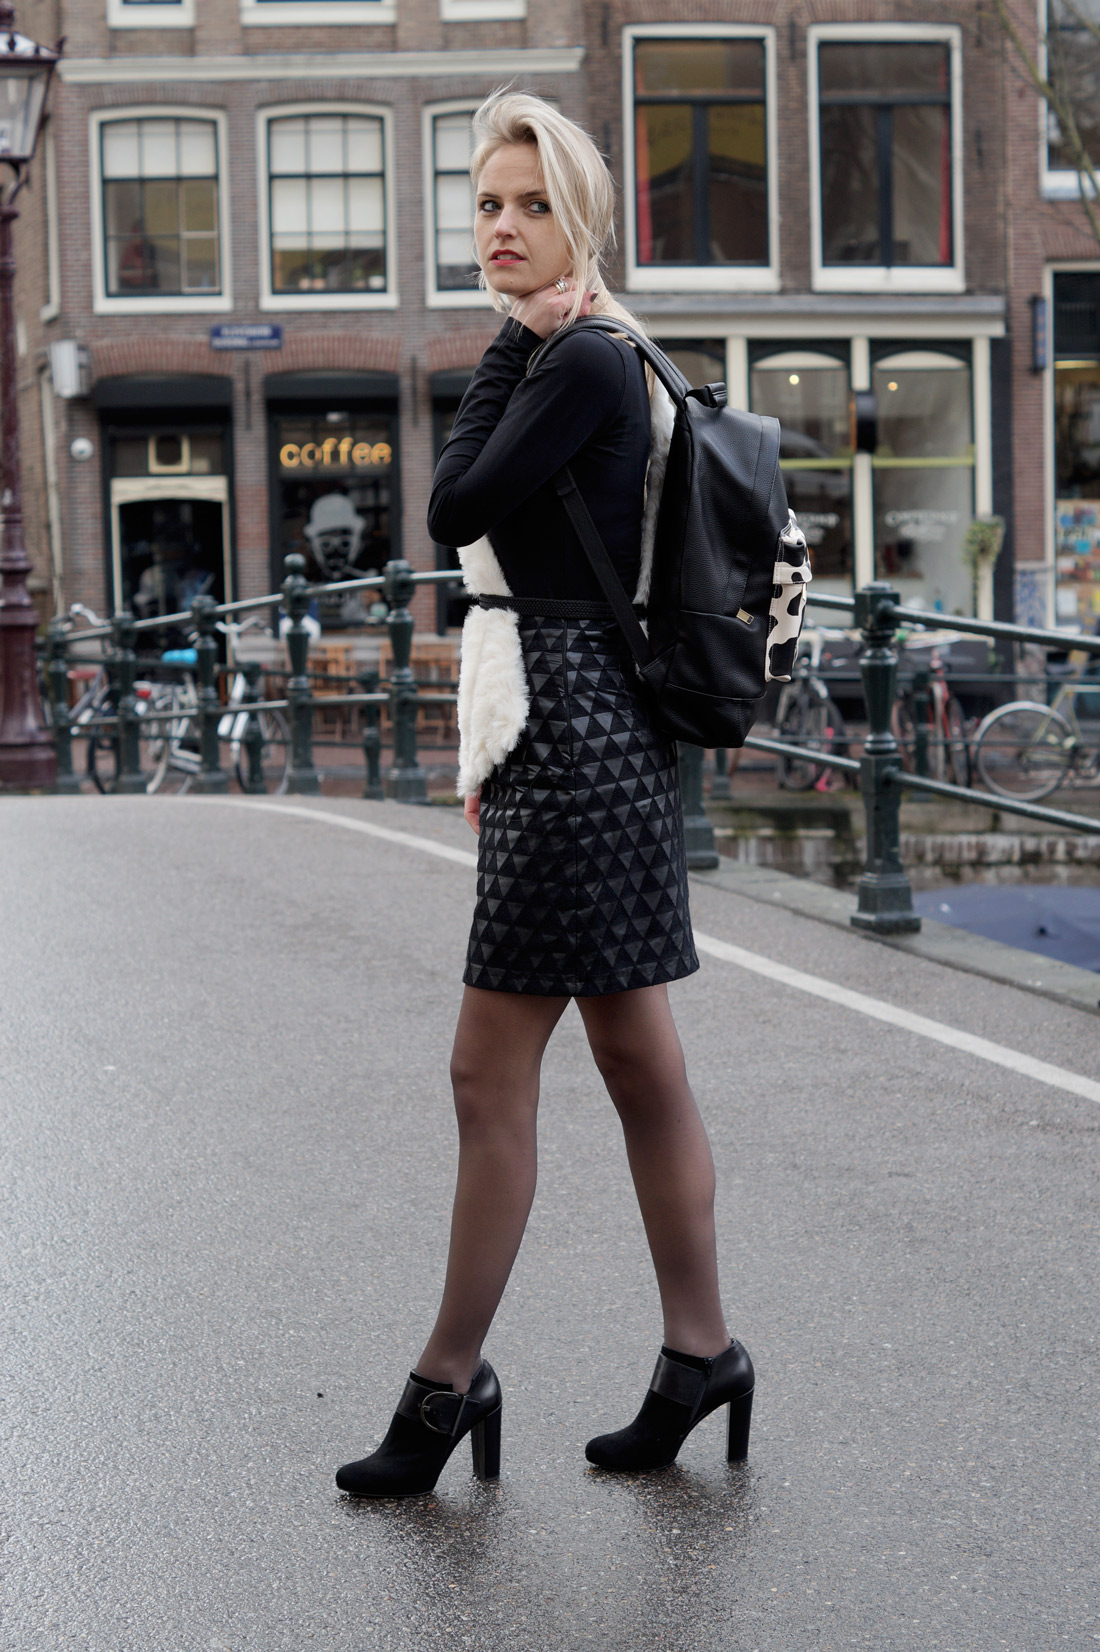 Bag-at-You---Fashion-blog---Street-Style---Black-outfit---Amsterdam